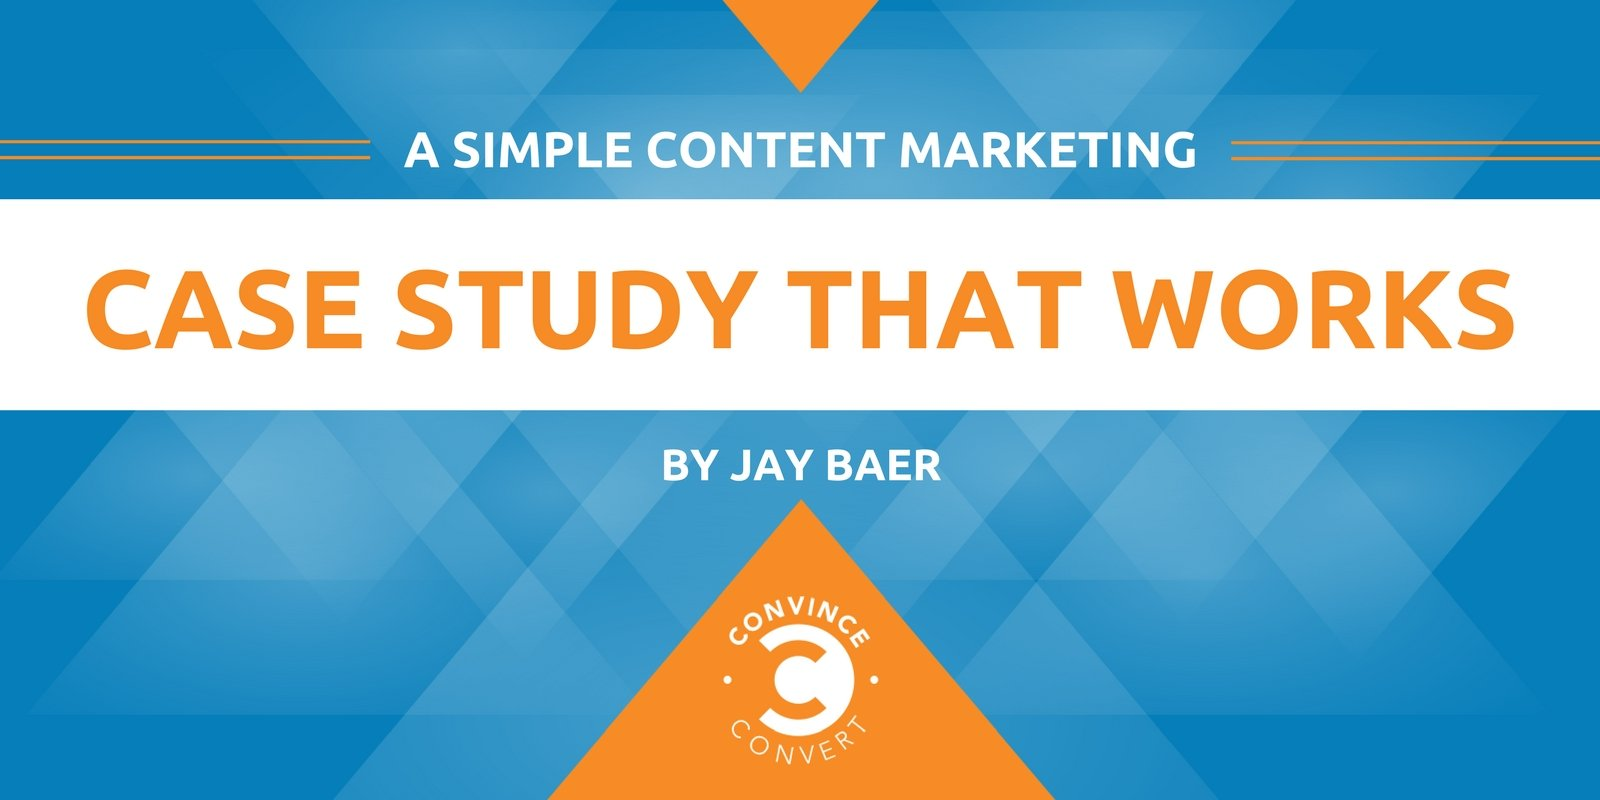 A Simple Content Marketing Case Study That Works